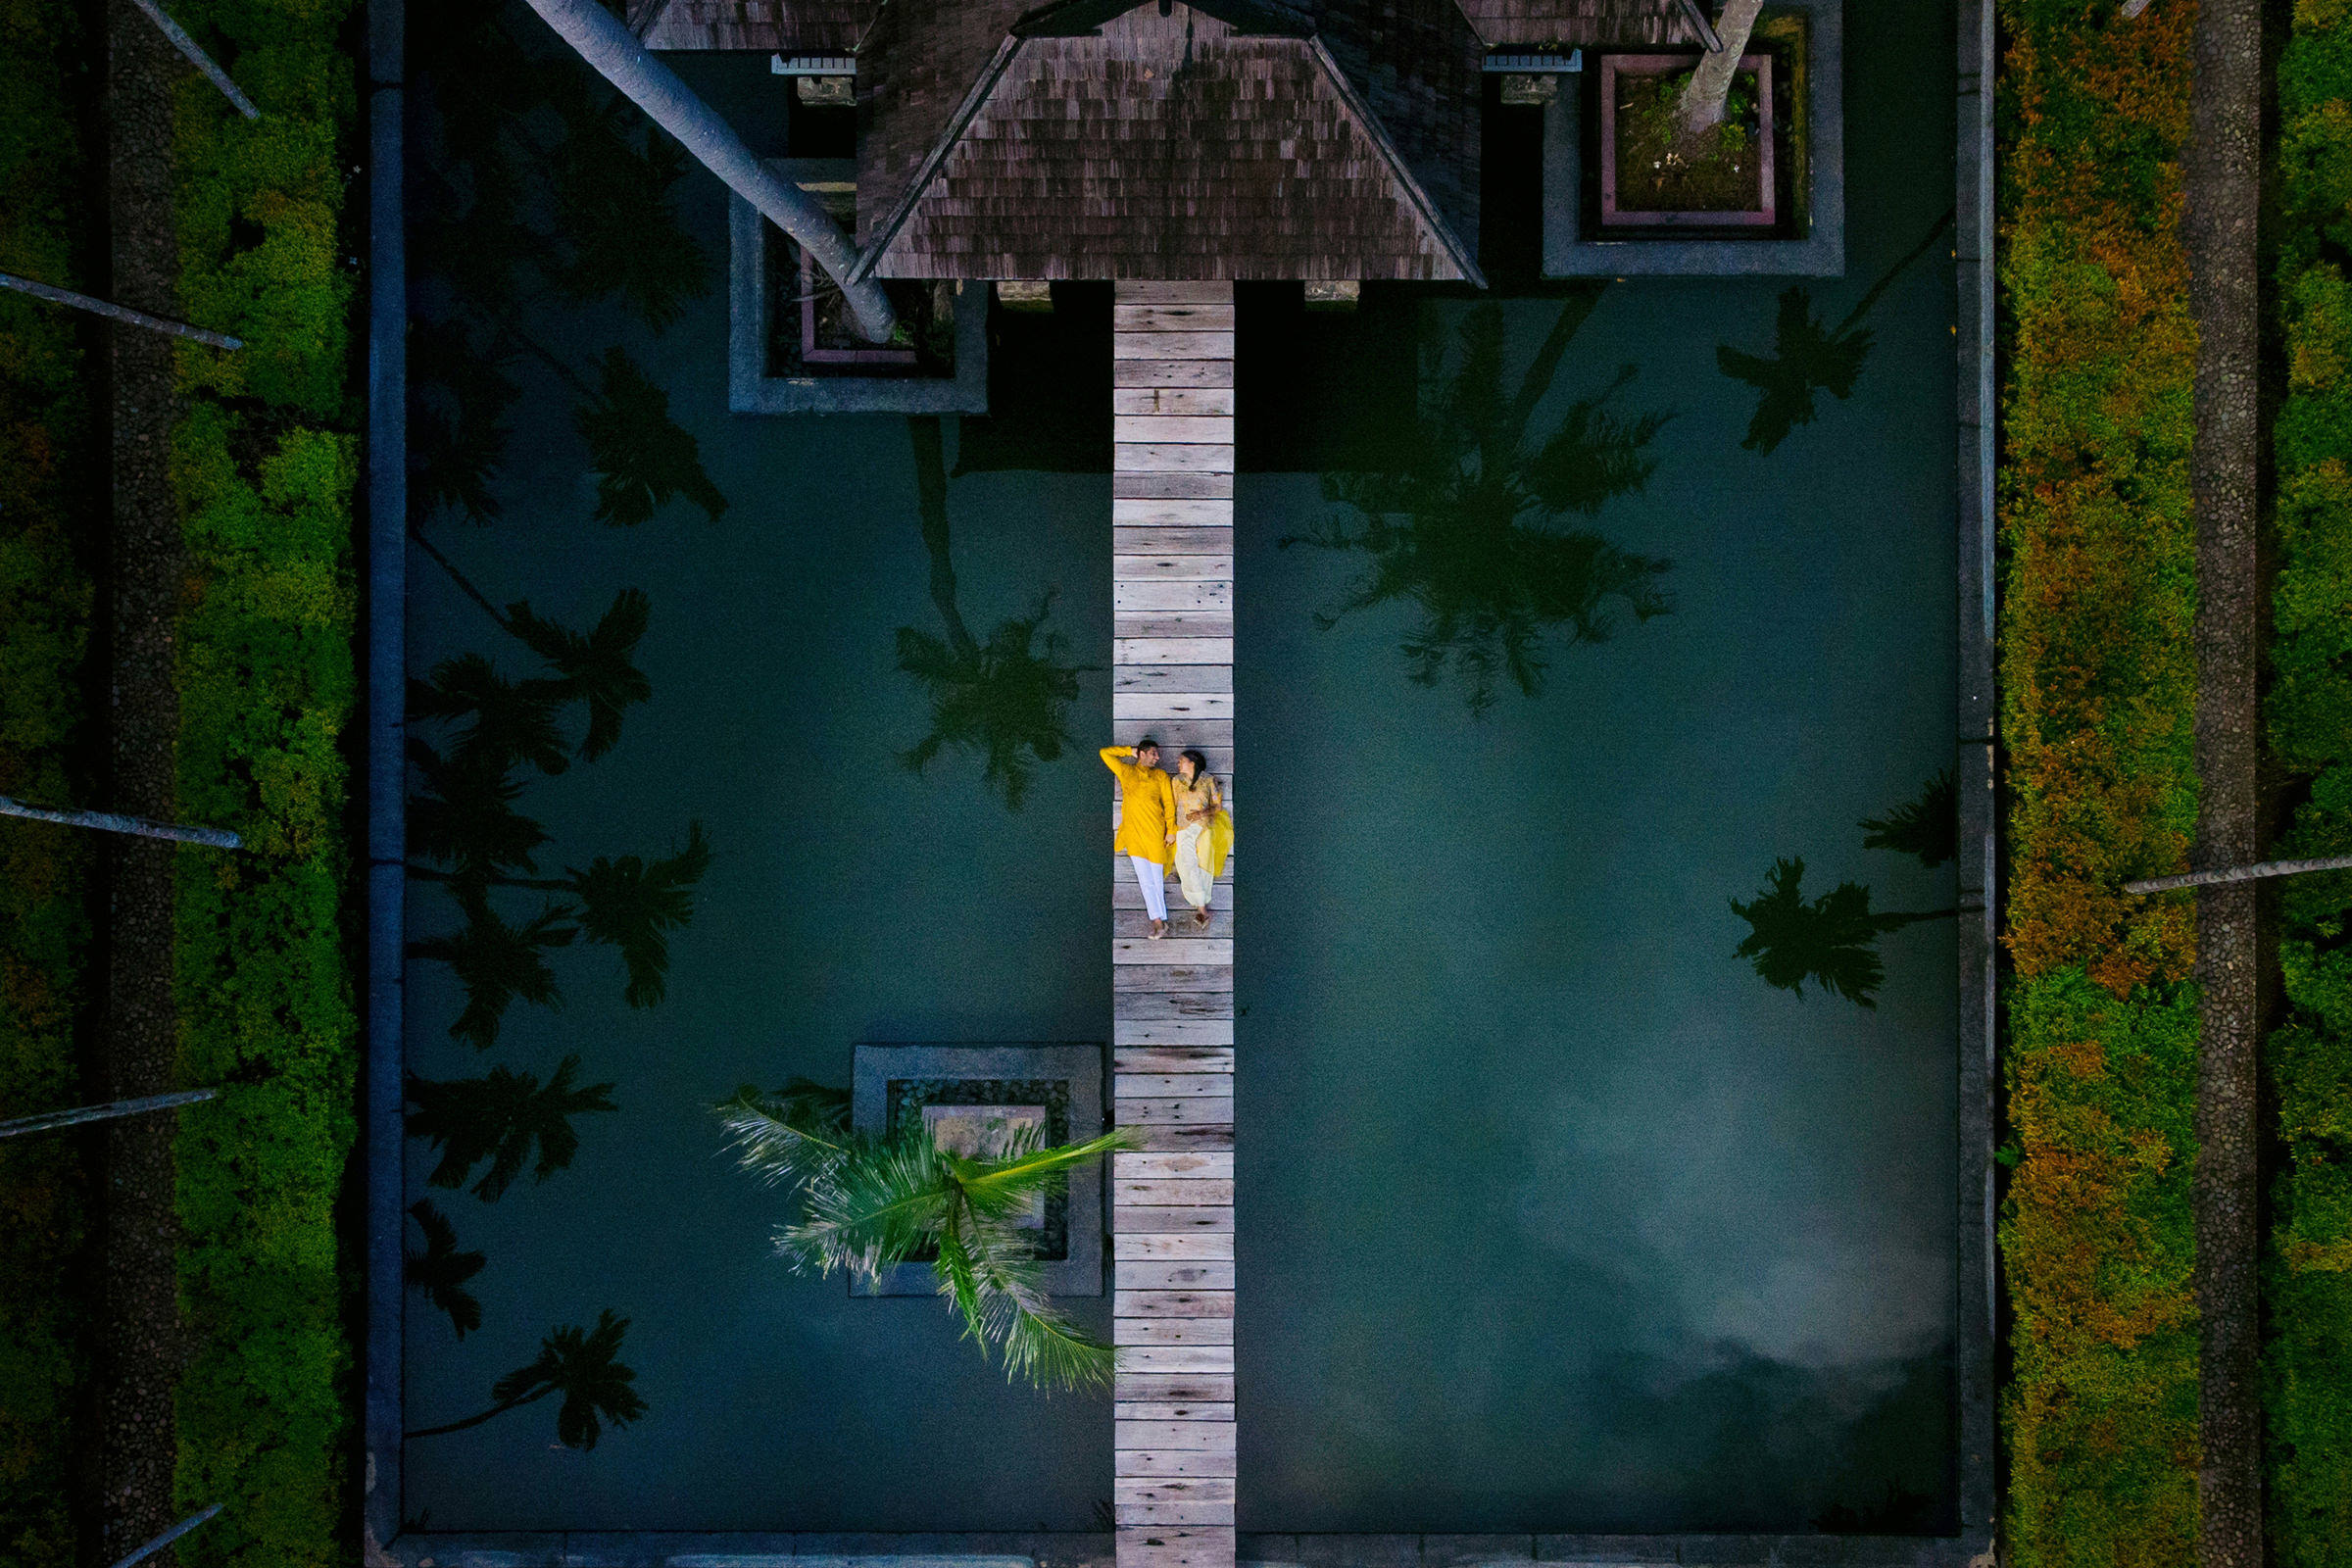 couple-luxuriating-in-tropics-shutterink-photography